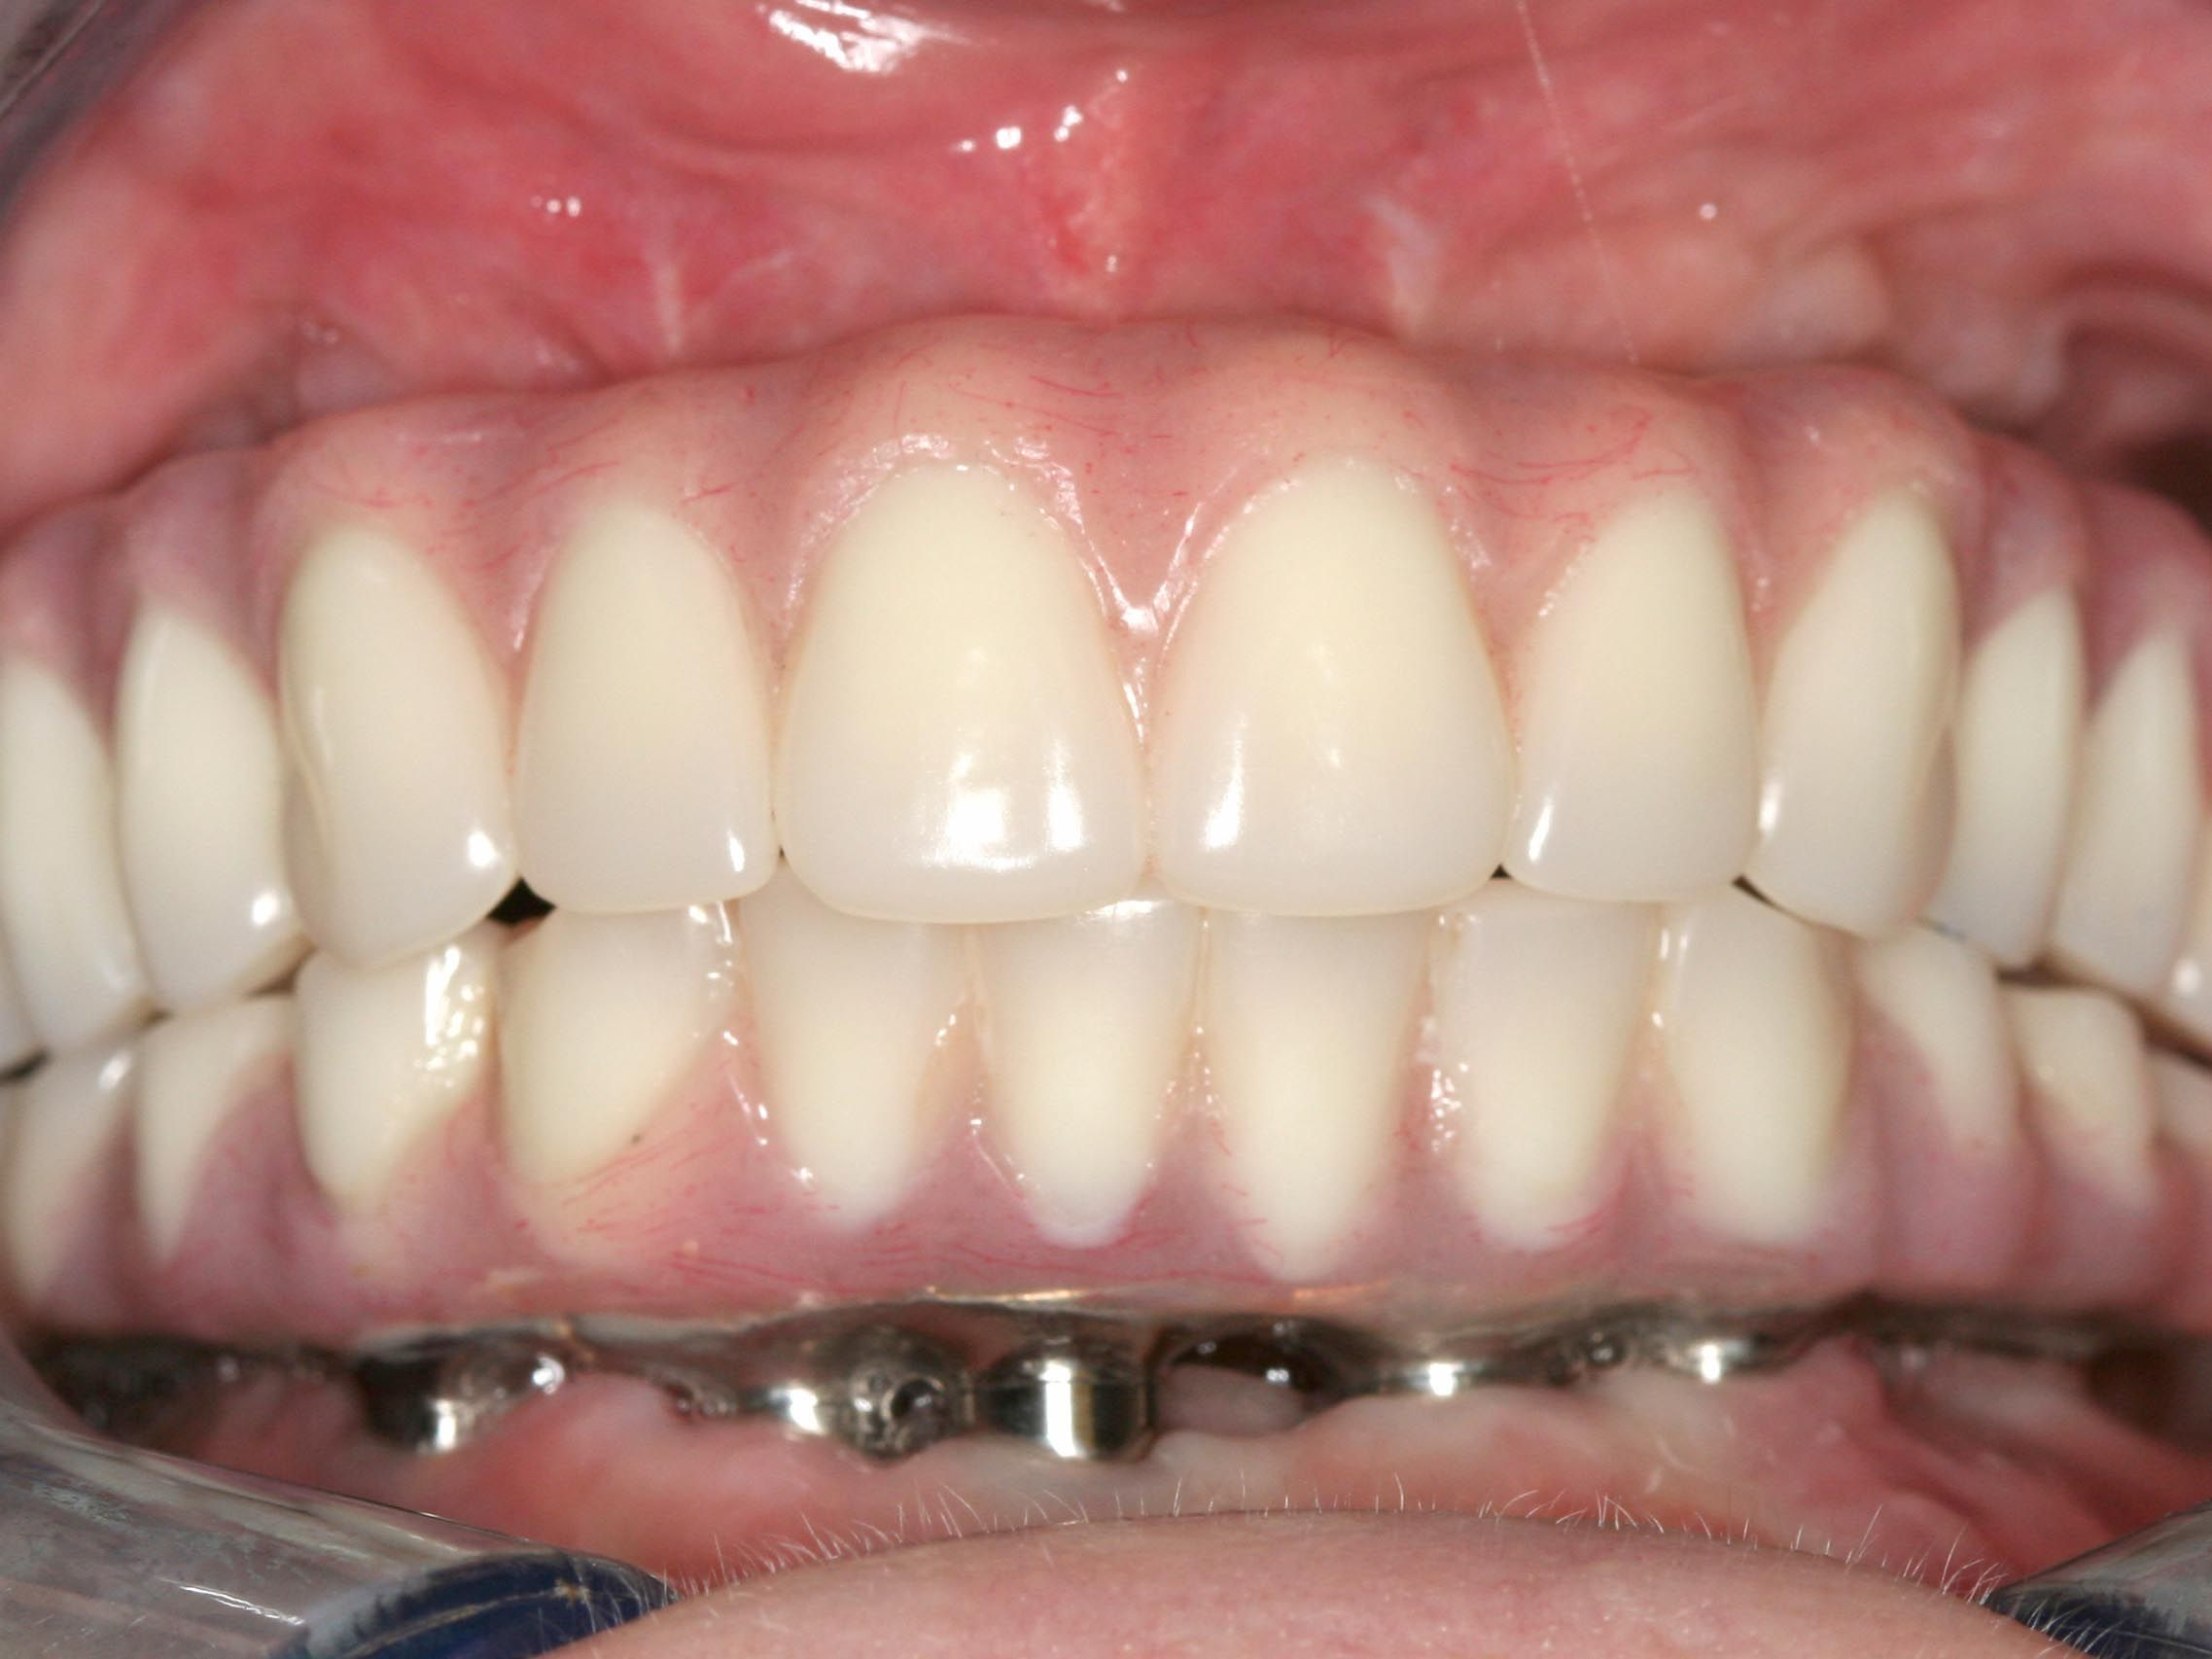 Here is the All on 4 Dental Implants to take care of your